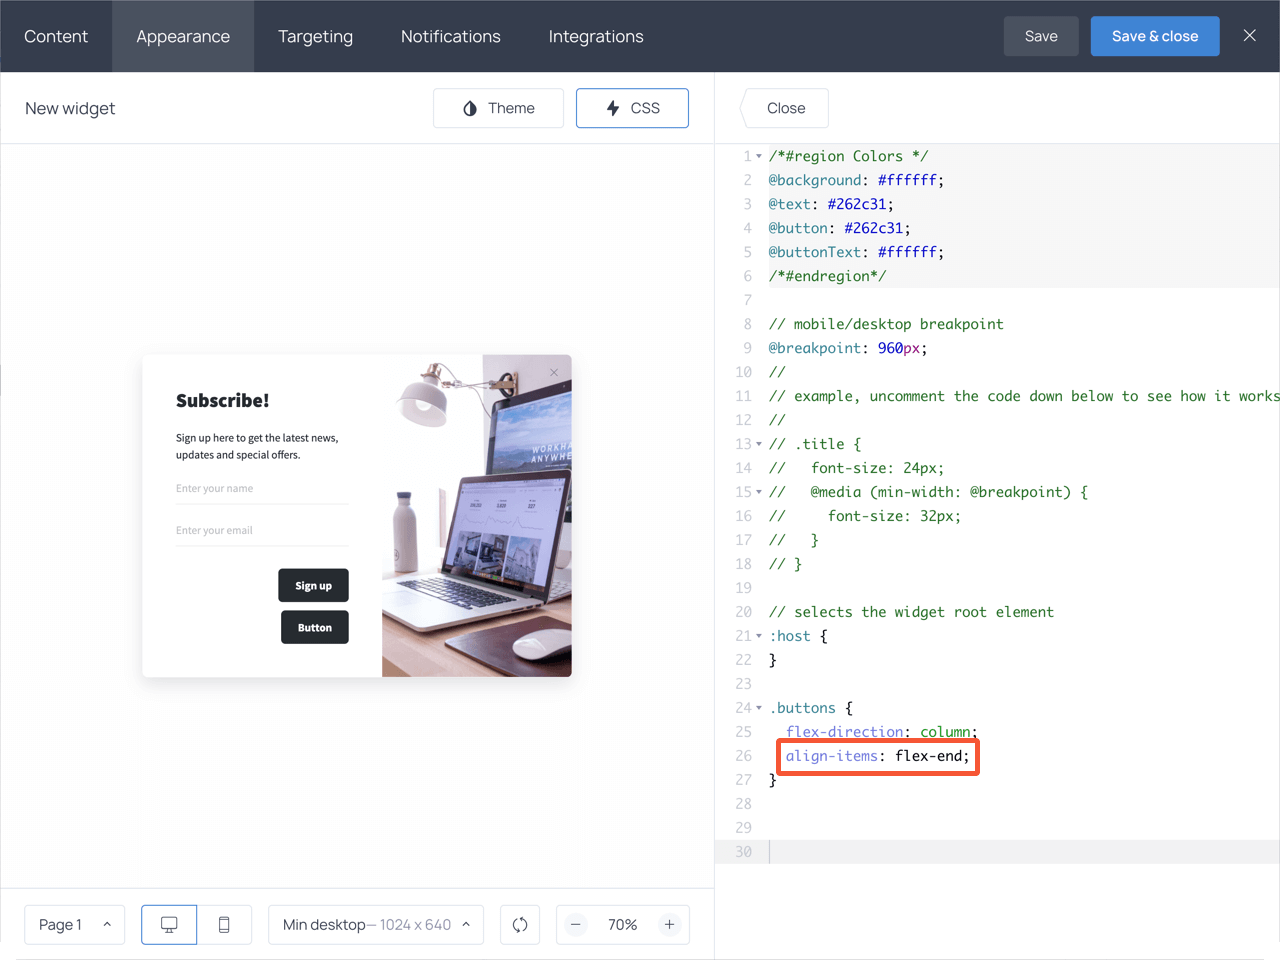 Align buttons to the right code